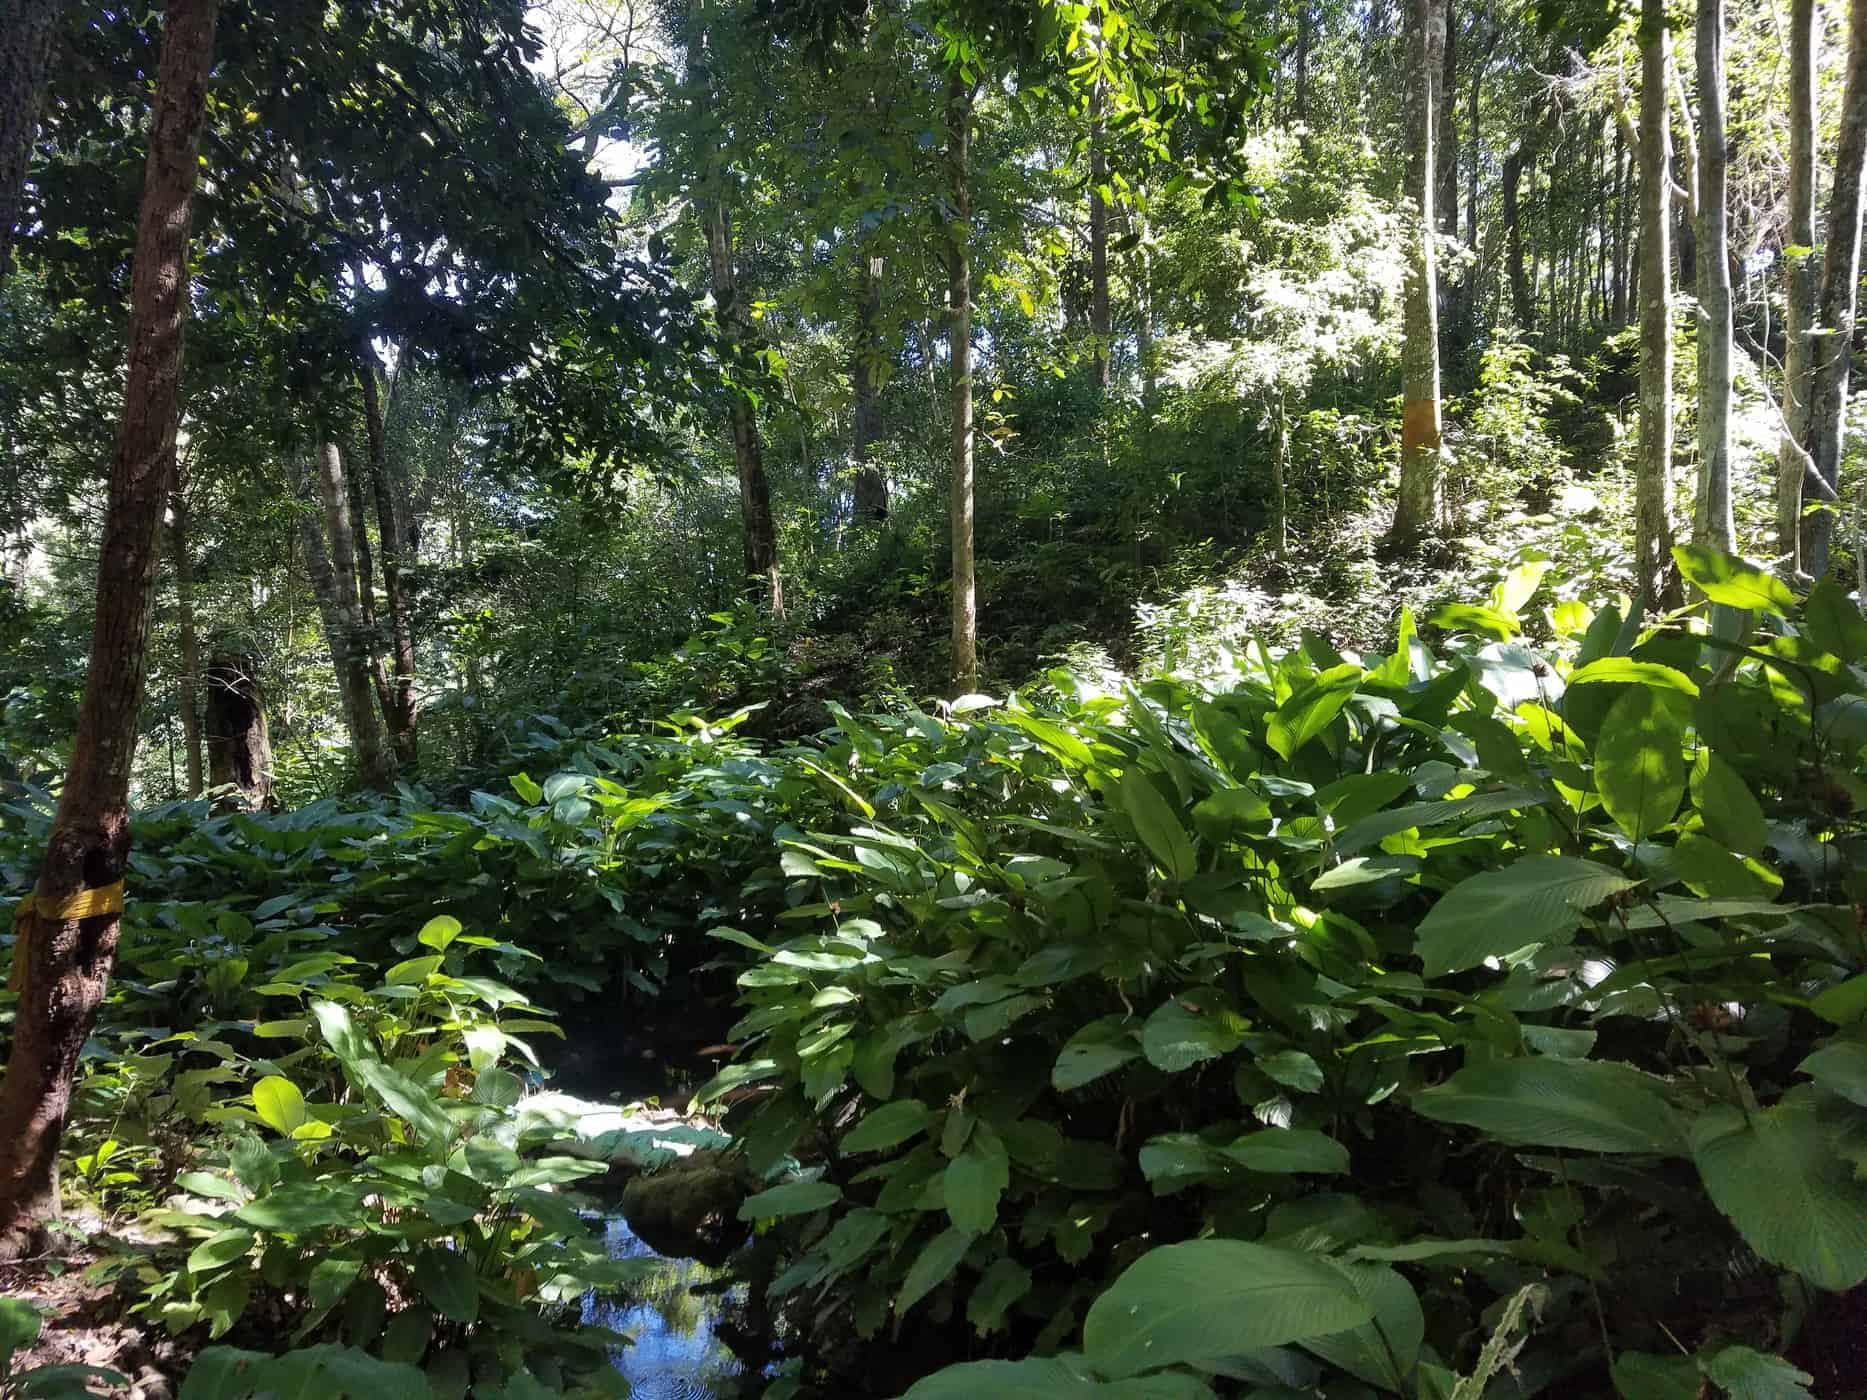 Streams and creeks snaking through verdant forests in Doi Inthanon National Park